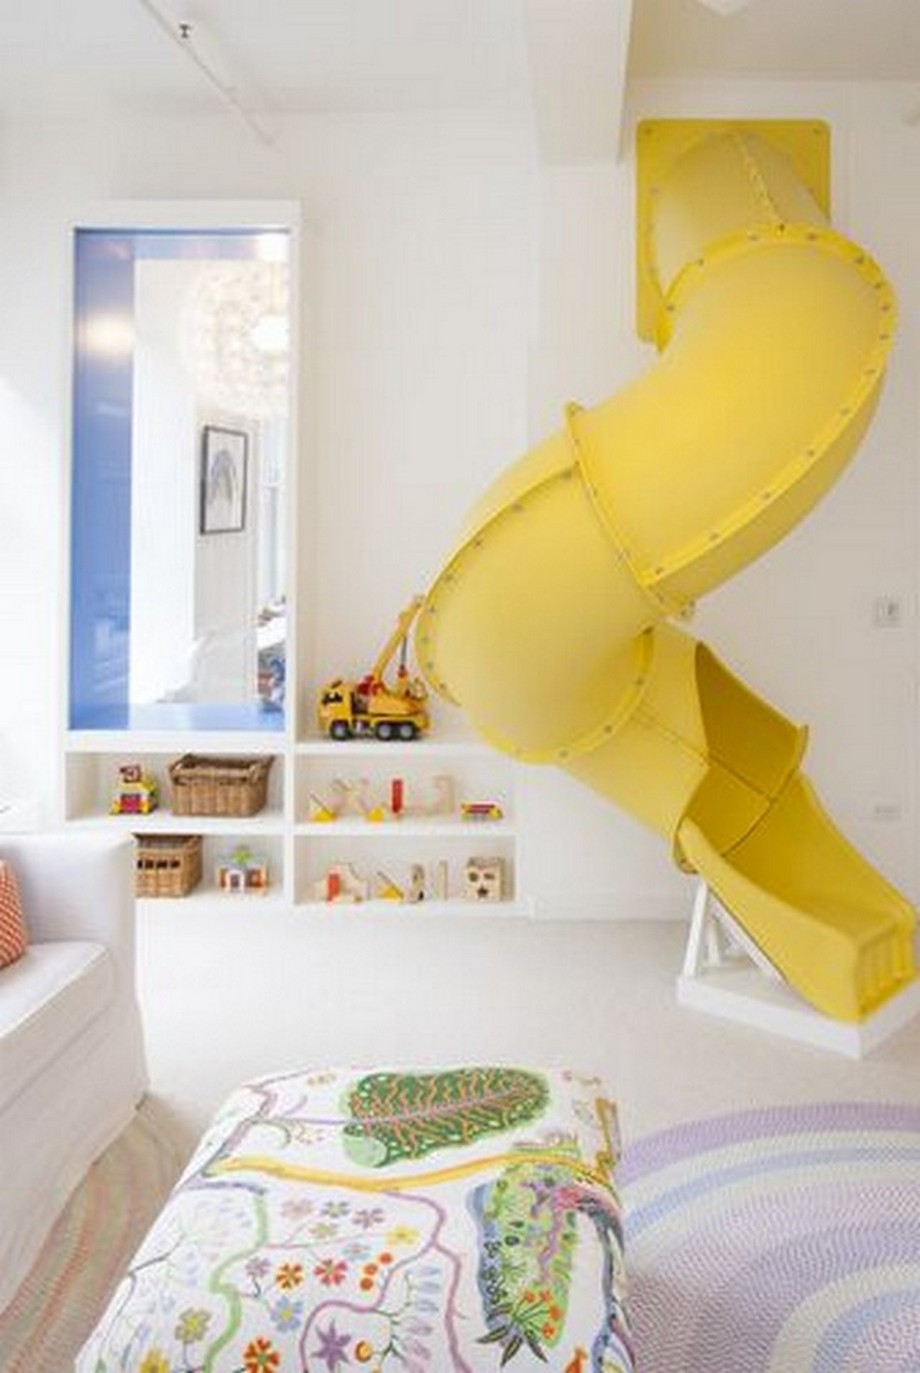 Ideas para Decorar: Decoración para un proyecto de lujo de niños ideas para decorar Ideas para Decorar: Decoración para un proyecto de lujo de niños 7 Playroom Decor Ideas Good for All Ages 1